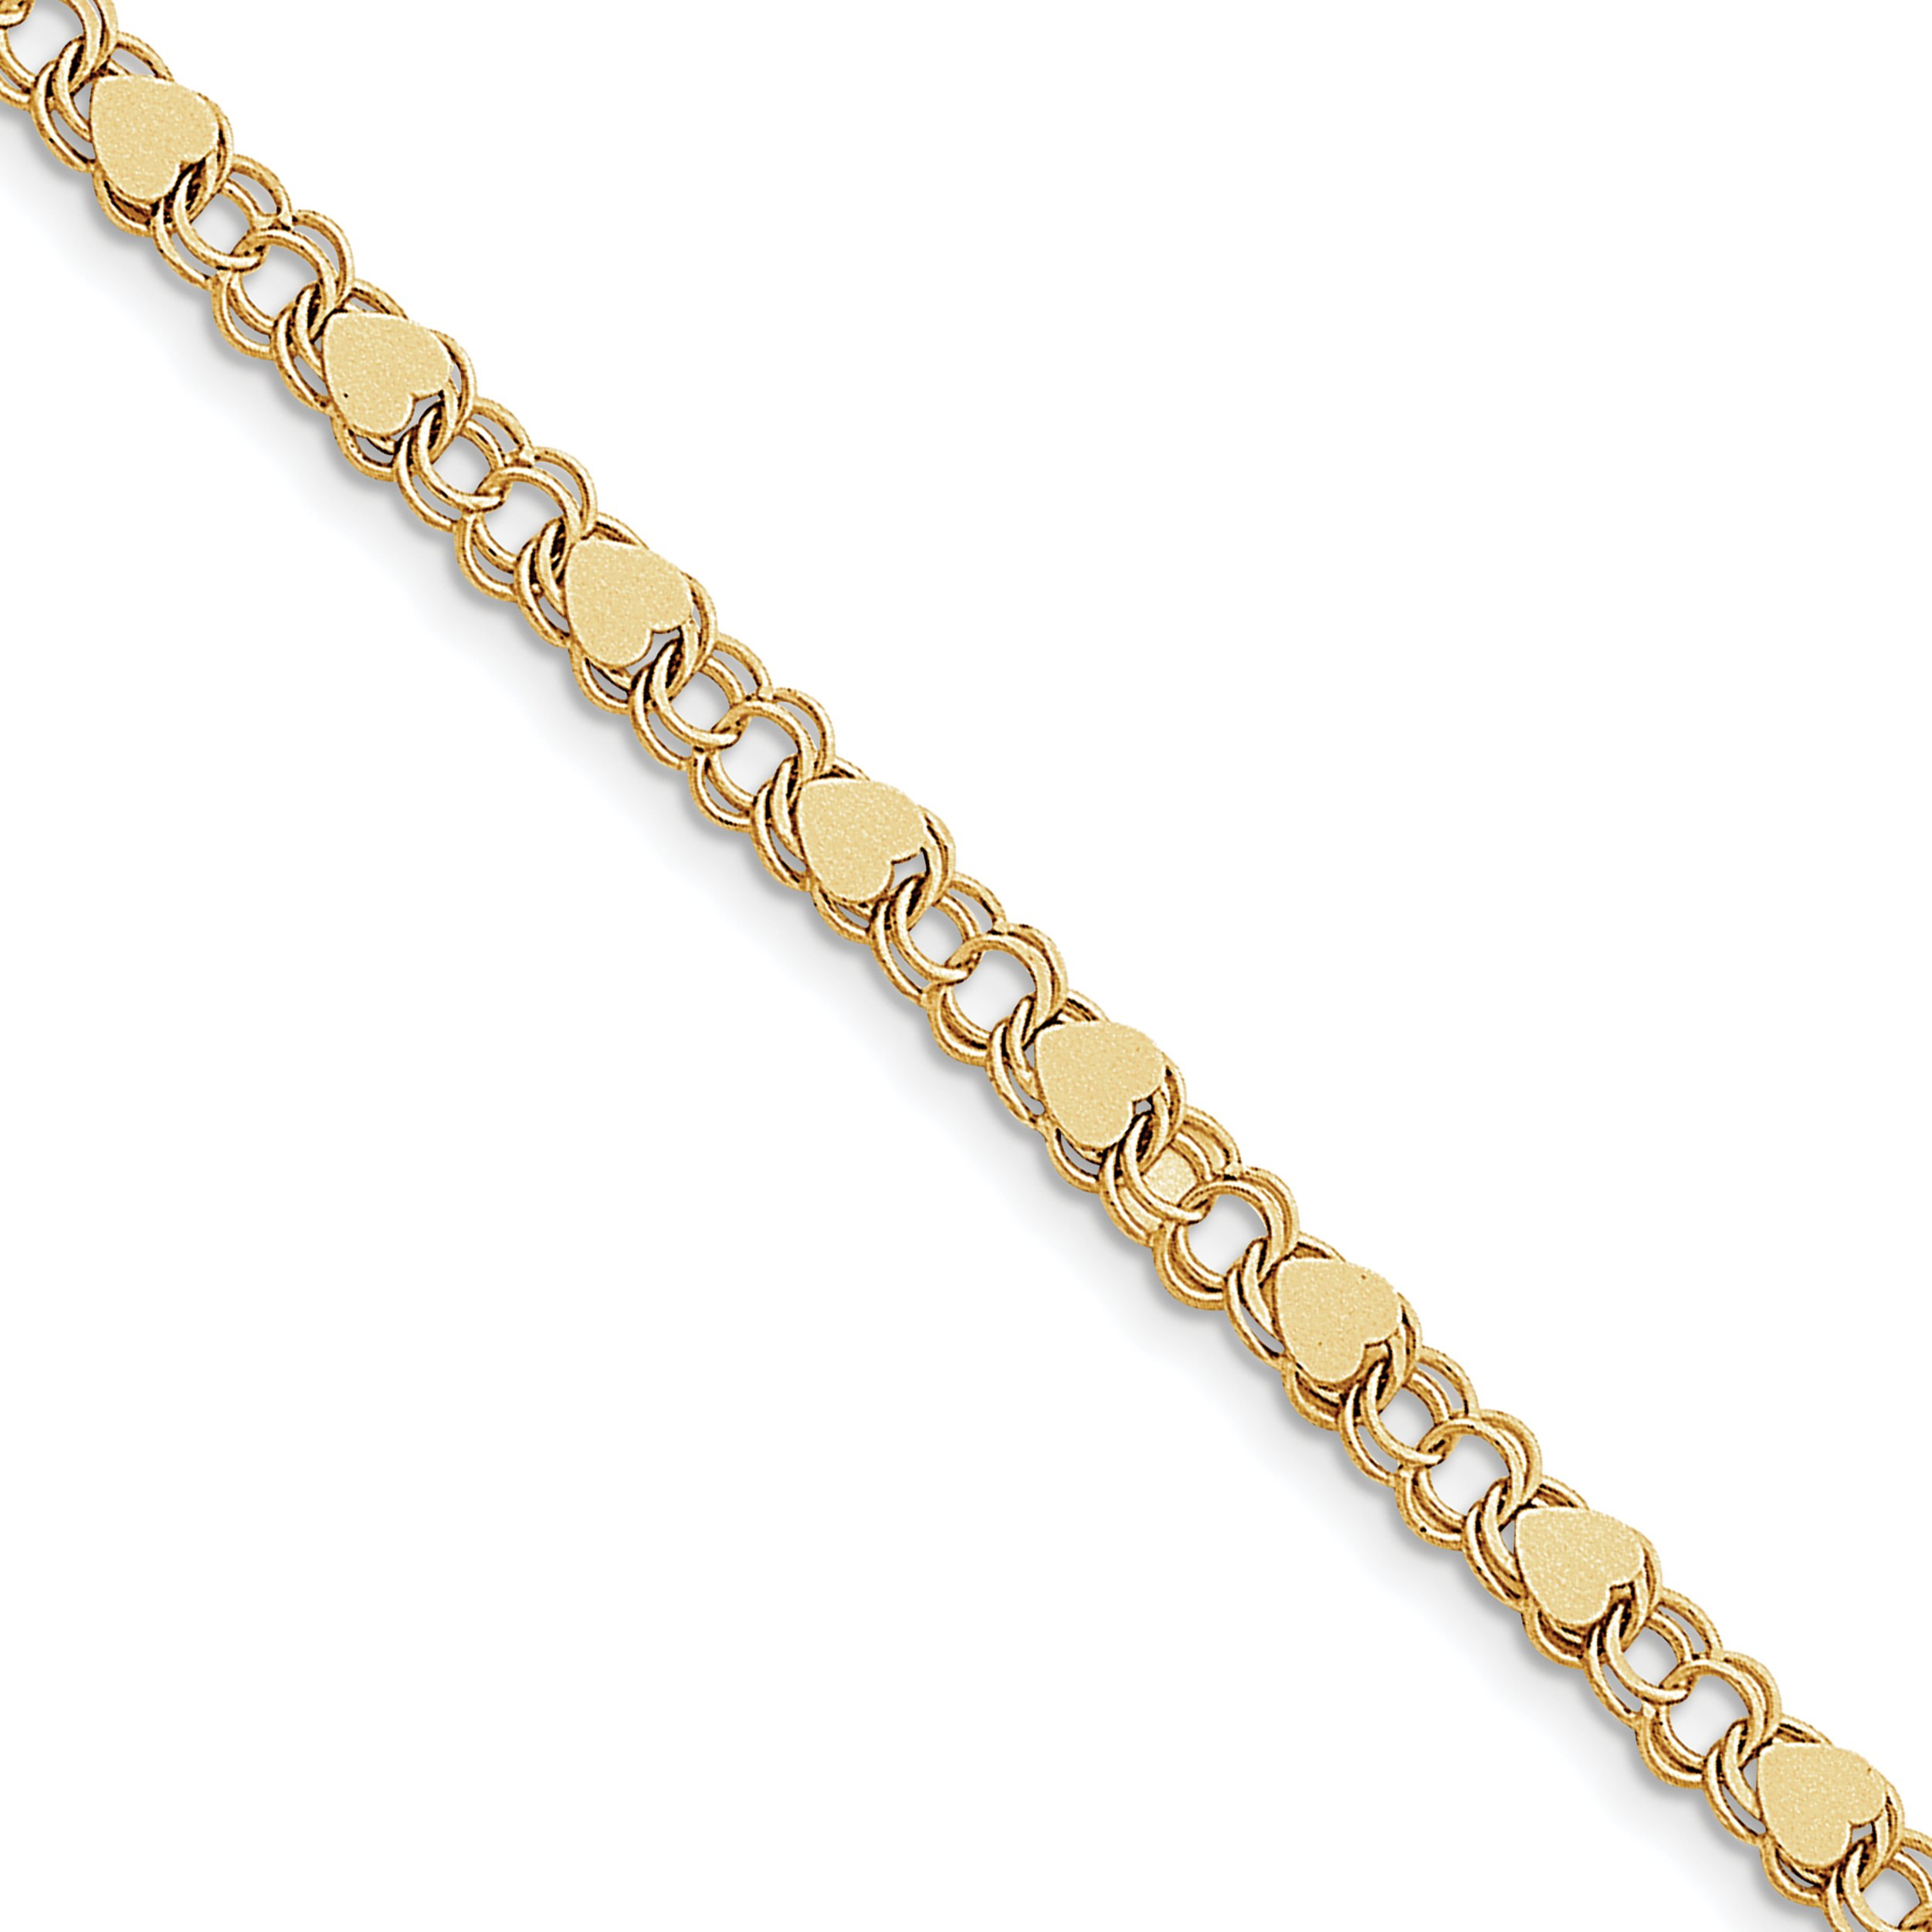 ICE CARATS 10k Yellow Gold Double Link Hearts Charm Bracelet 7 Inch Fine Jewelry Gift Set For Women Heart